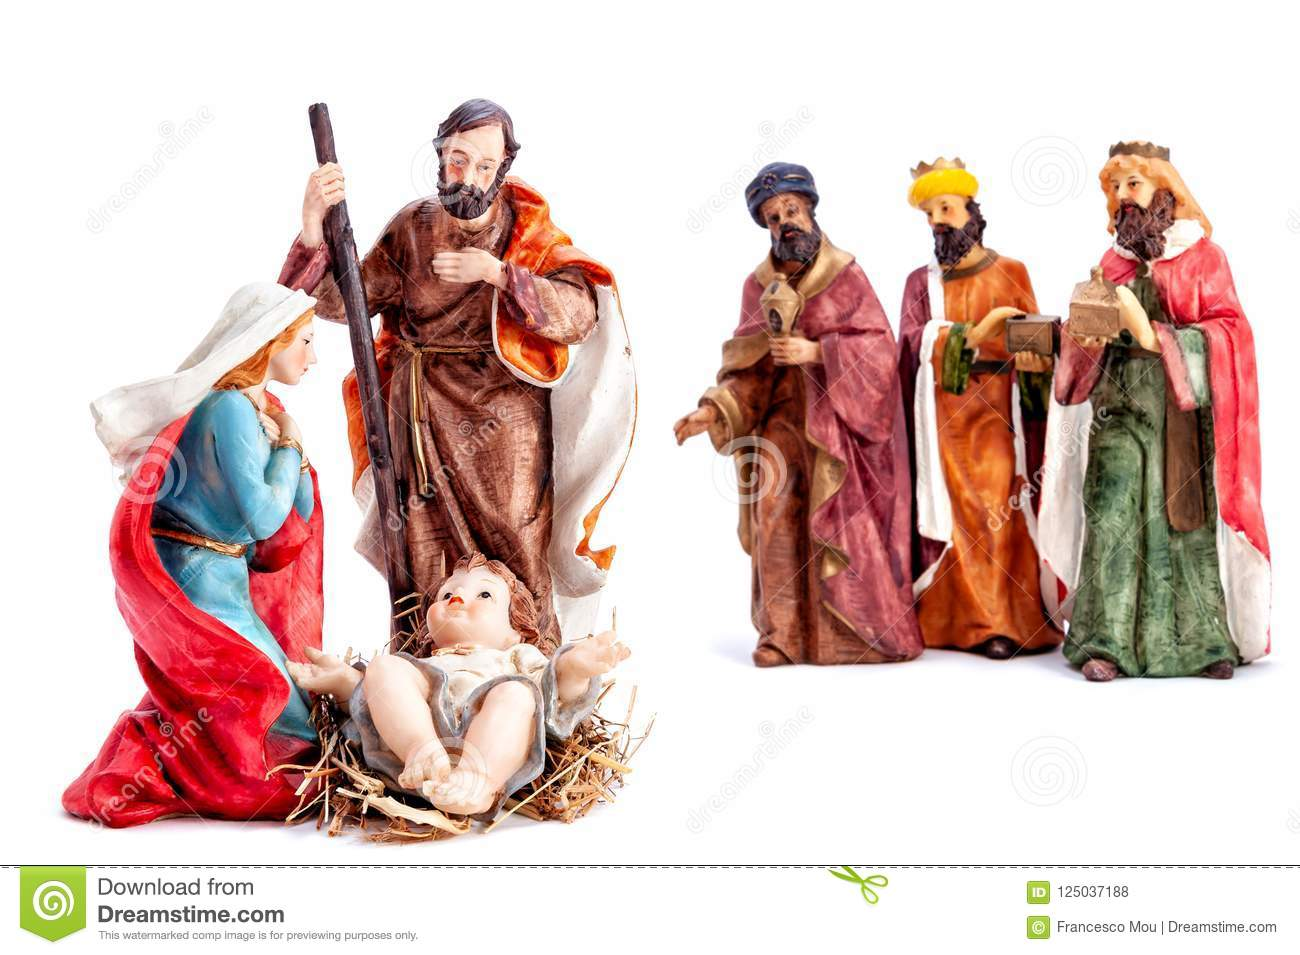 Christmas nativity scene with the Holy Family and the three wise men, isolated on white background